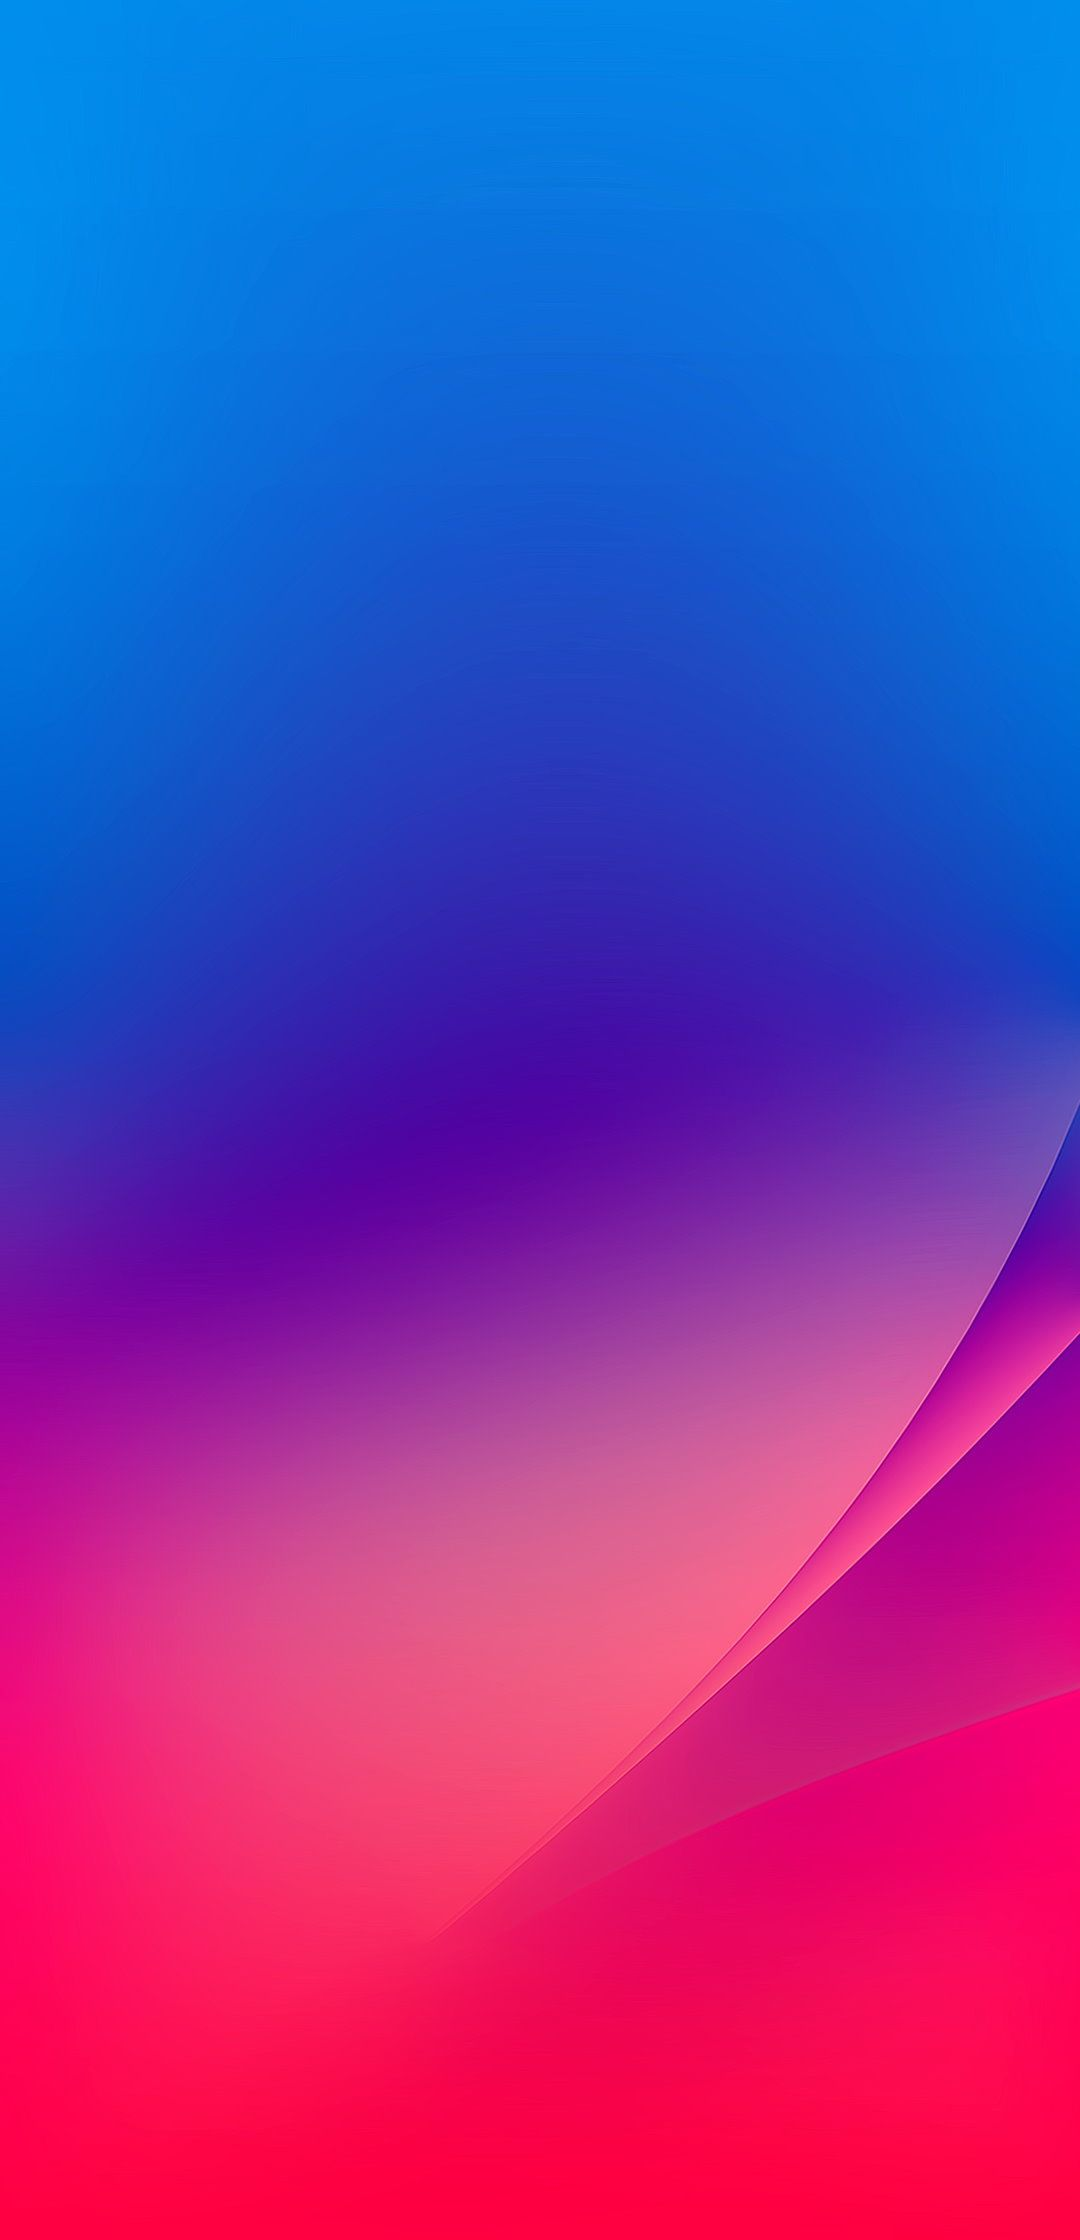 Wallpapers Huawei P20 Pro   Pack 8 Wallpapers in 2019 Huawei 1080x2240